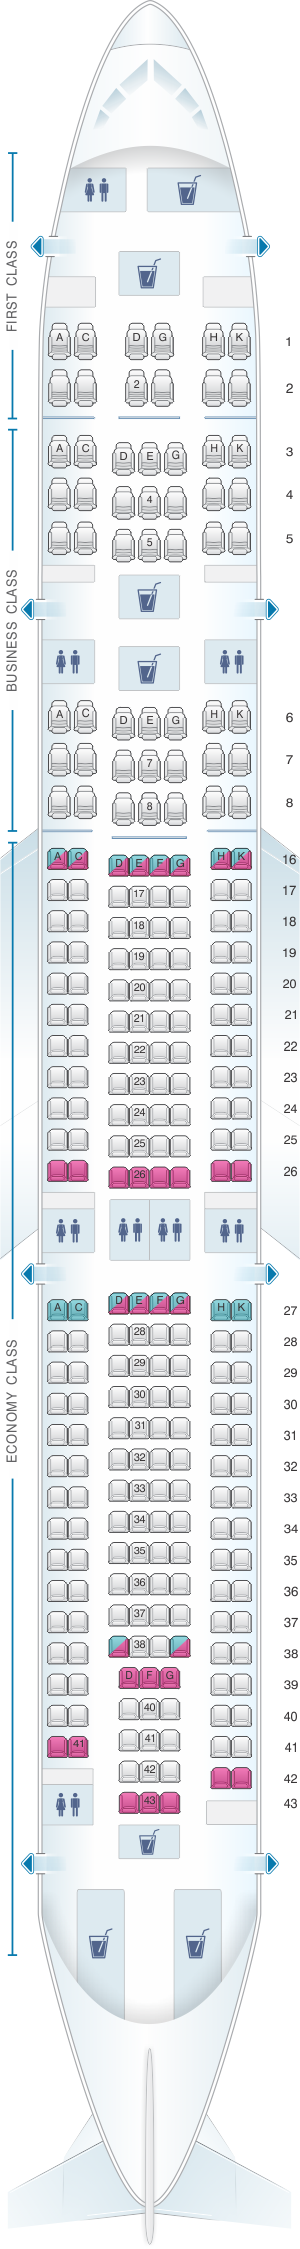 Seat map for Hi Fly Airbus A340 300 TQY/TQZ 267pax